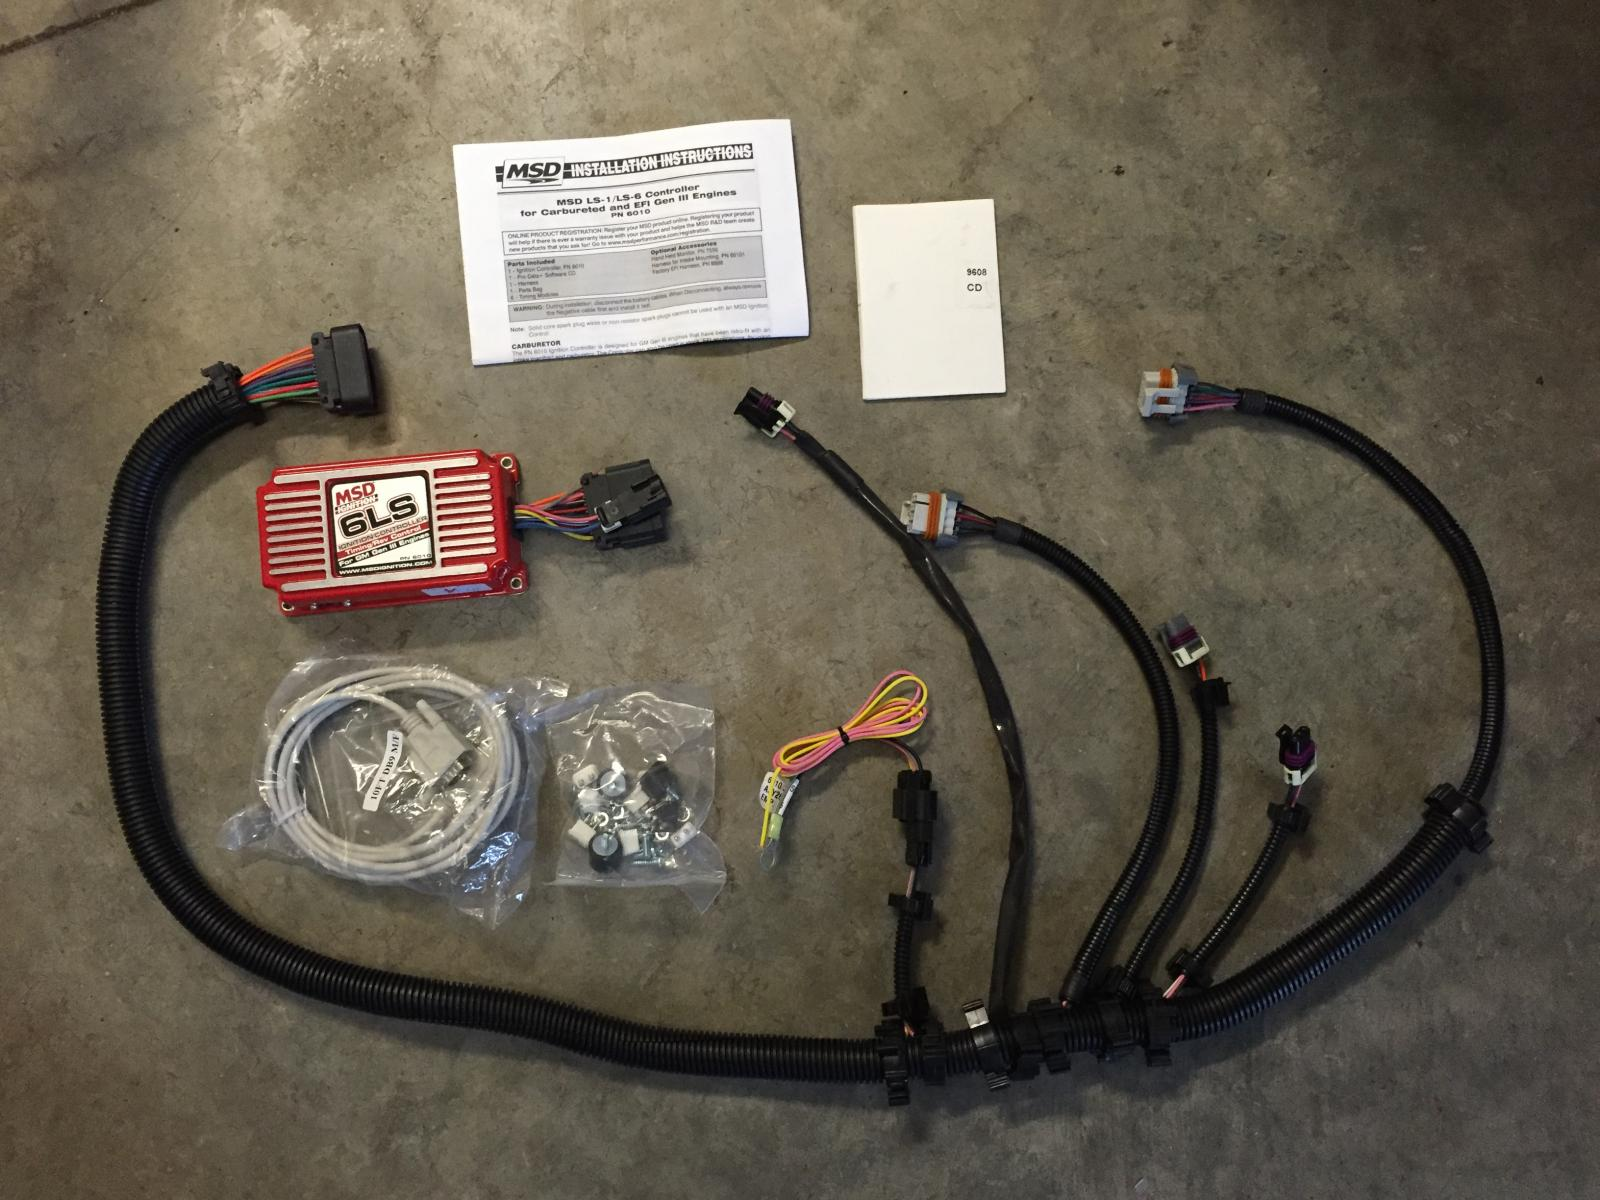 new, unopened, msd cut-to-fit ls spark plug wires - $100 shipped